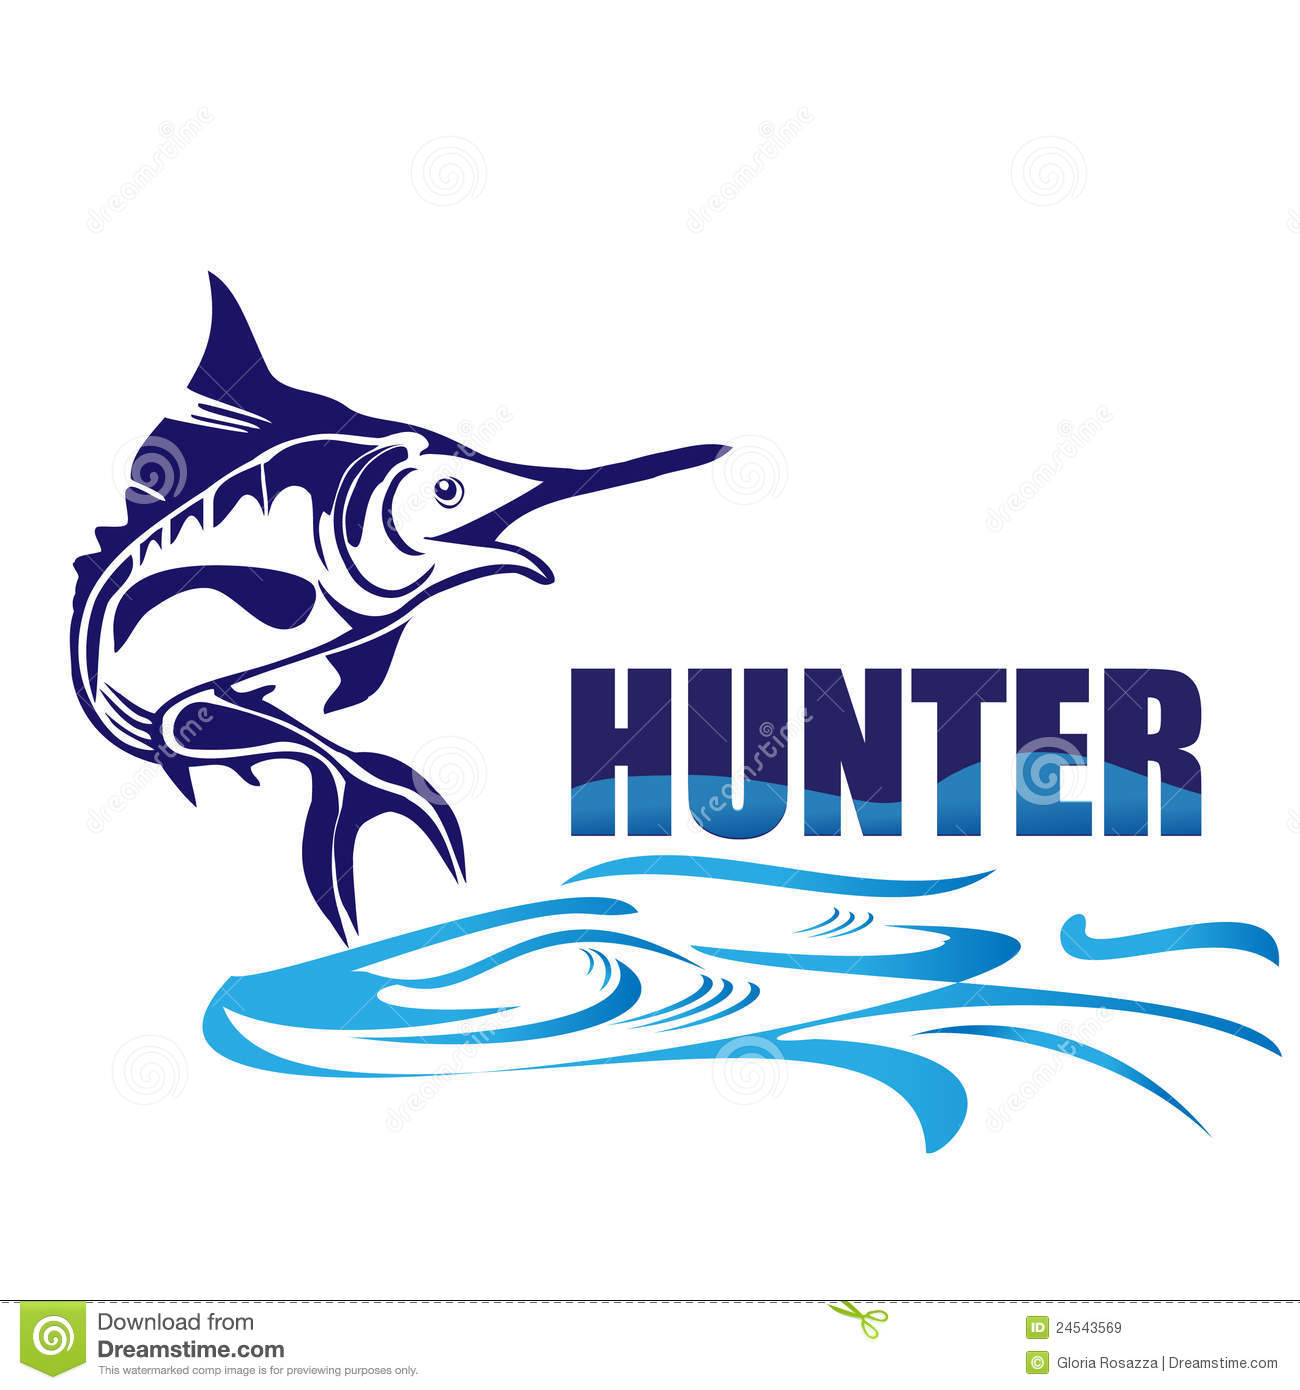 Fishing logos free images galleries for Fishing times free